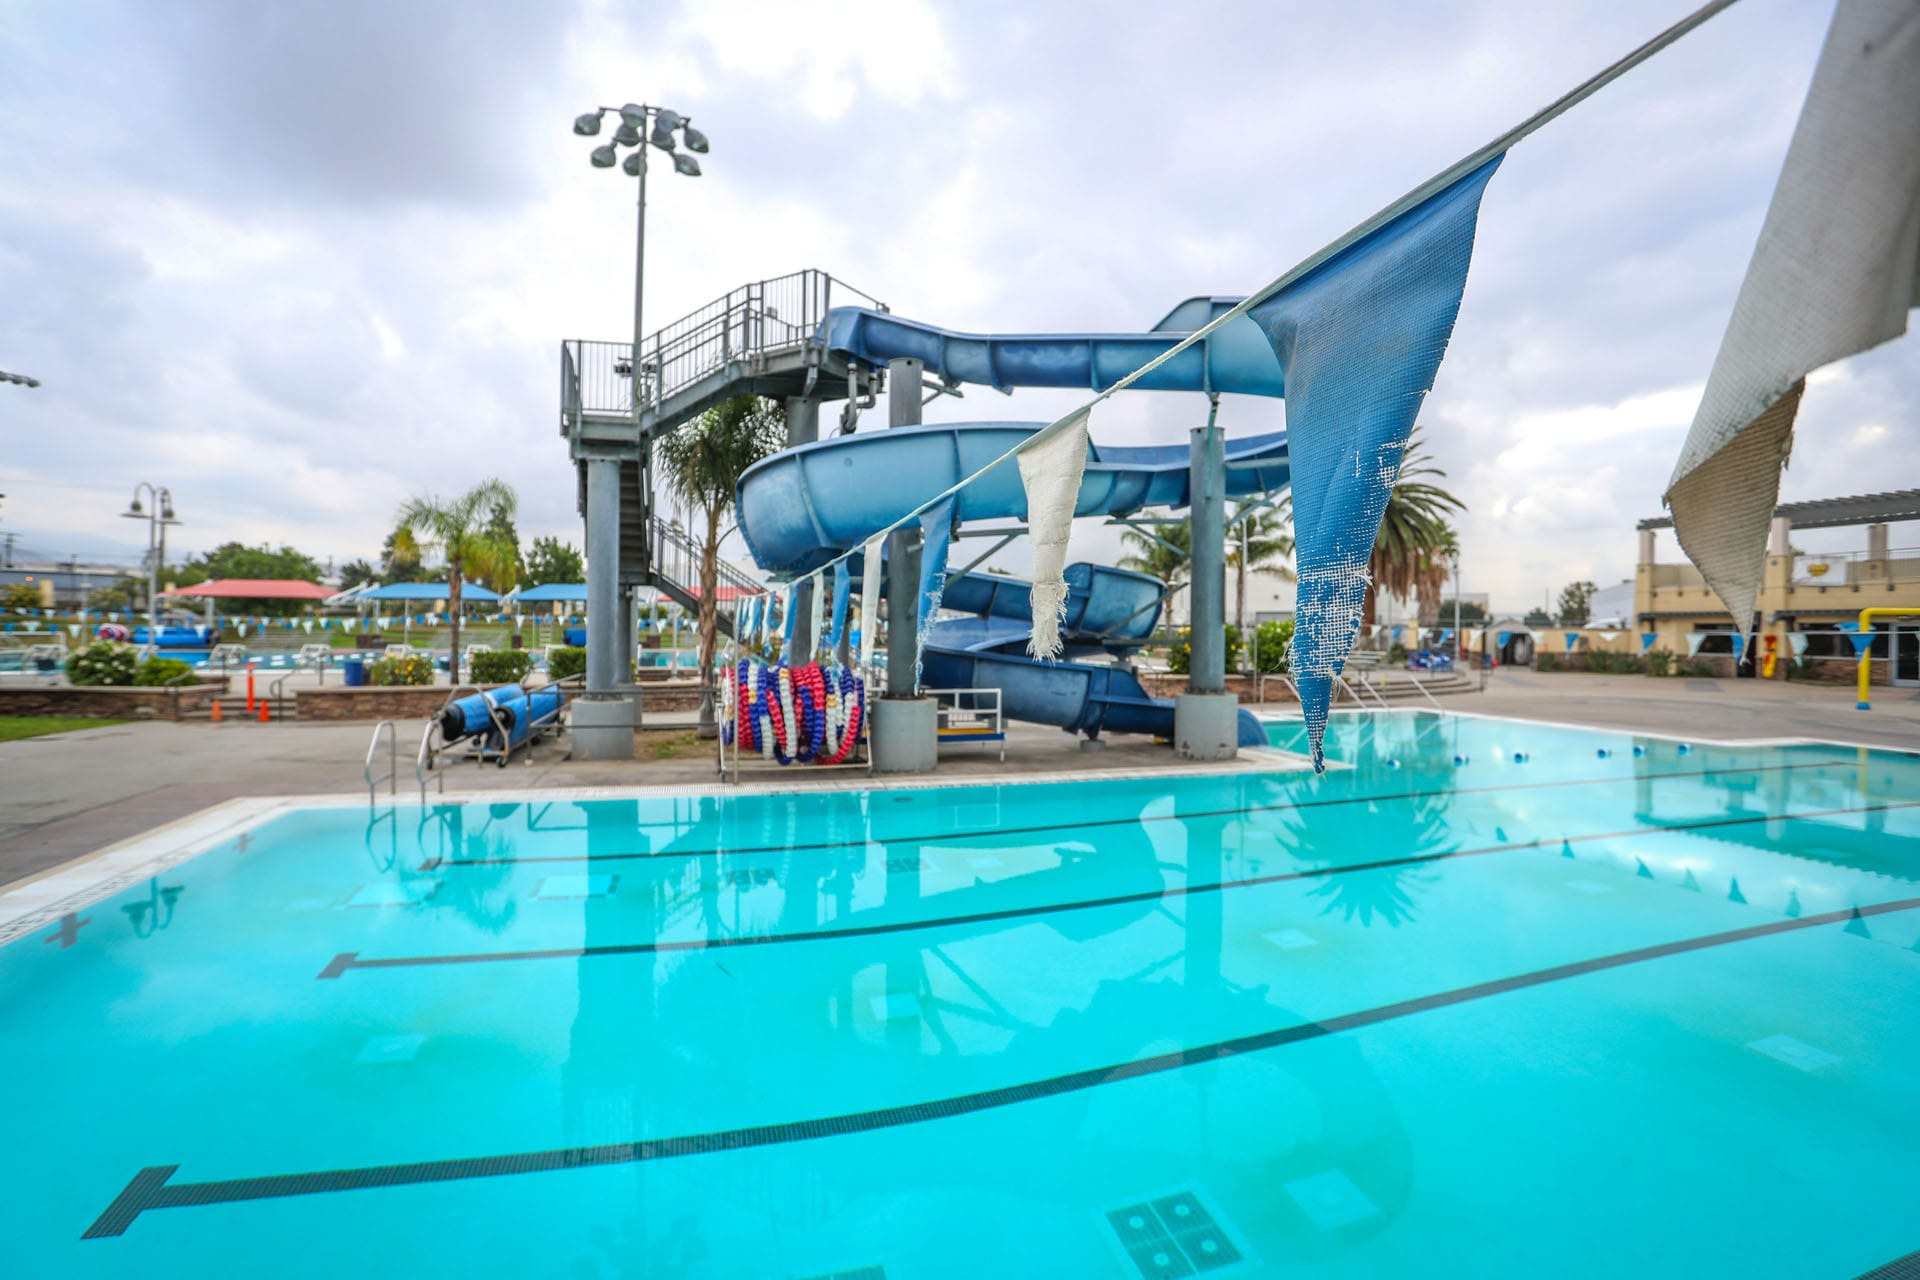 Pool with big water slide